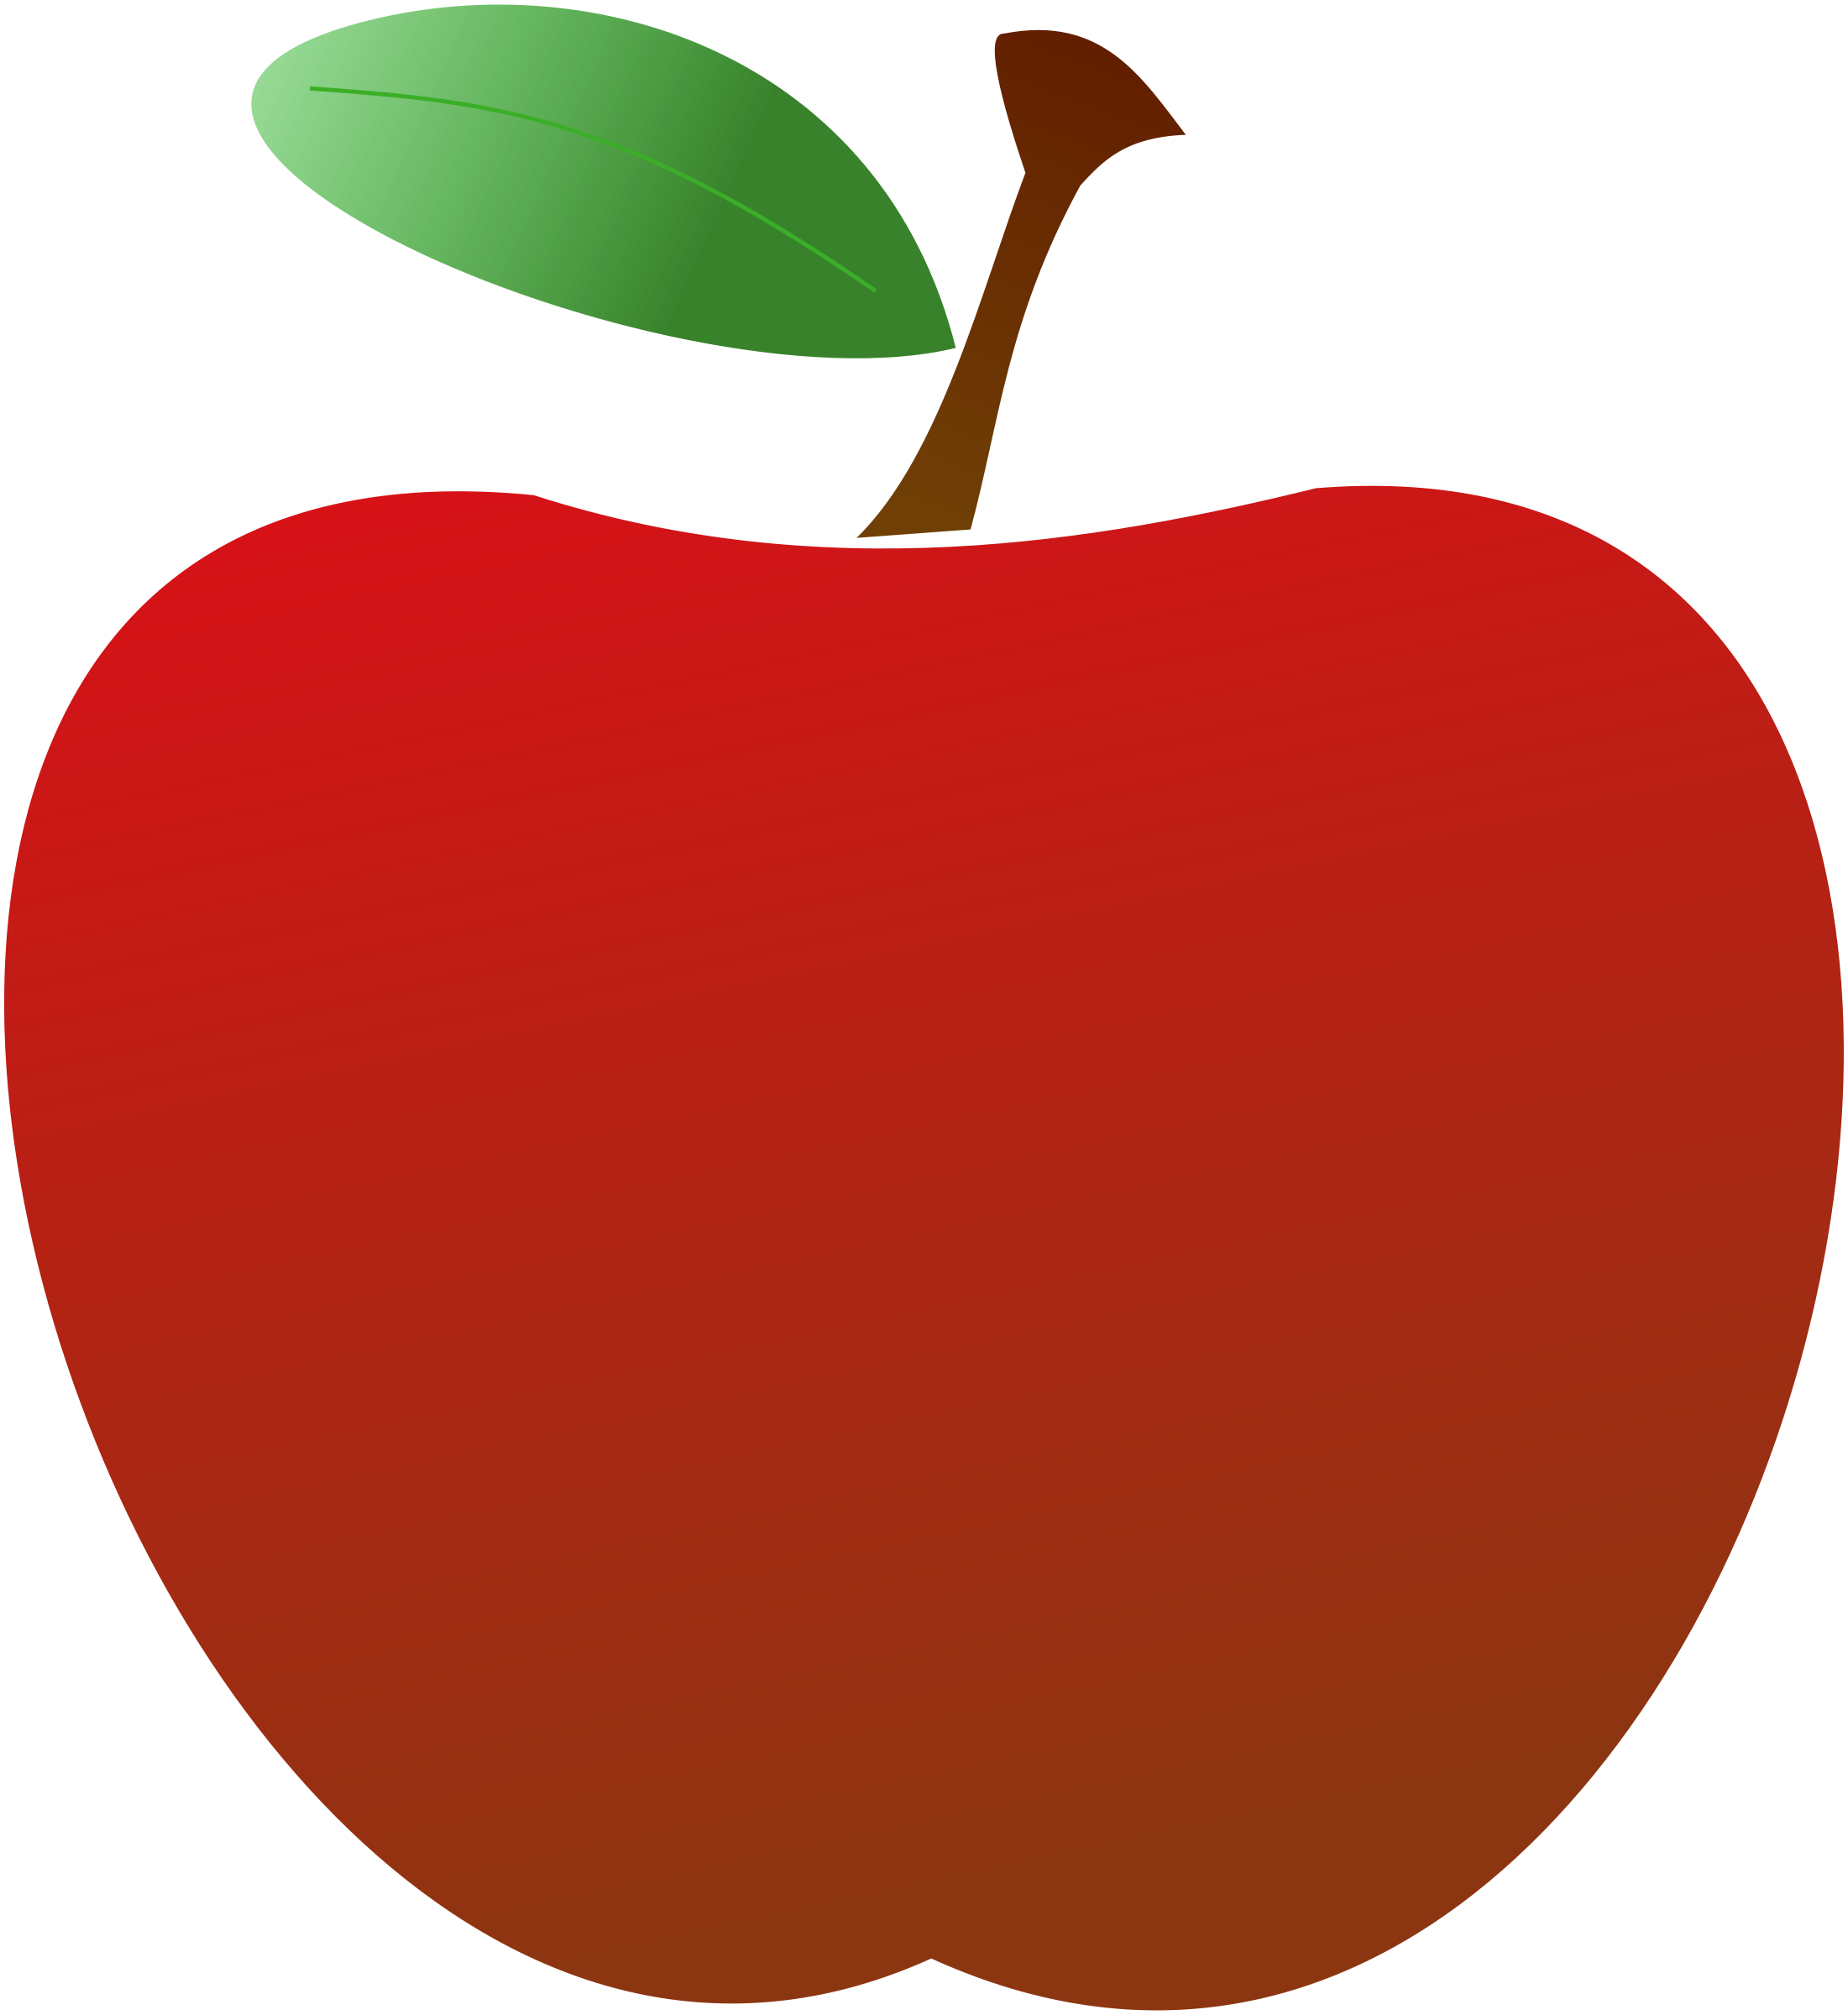 Back to school apple clipart clip art transparent library Teacher Apple Clipart | Clipart Panda - Free Clipart Images ... clip art transparent library